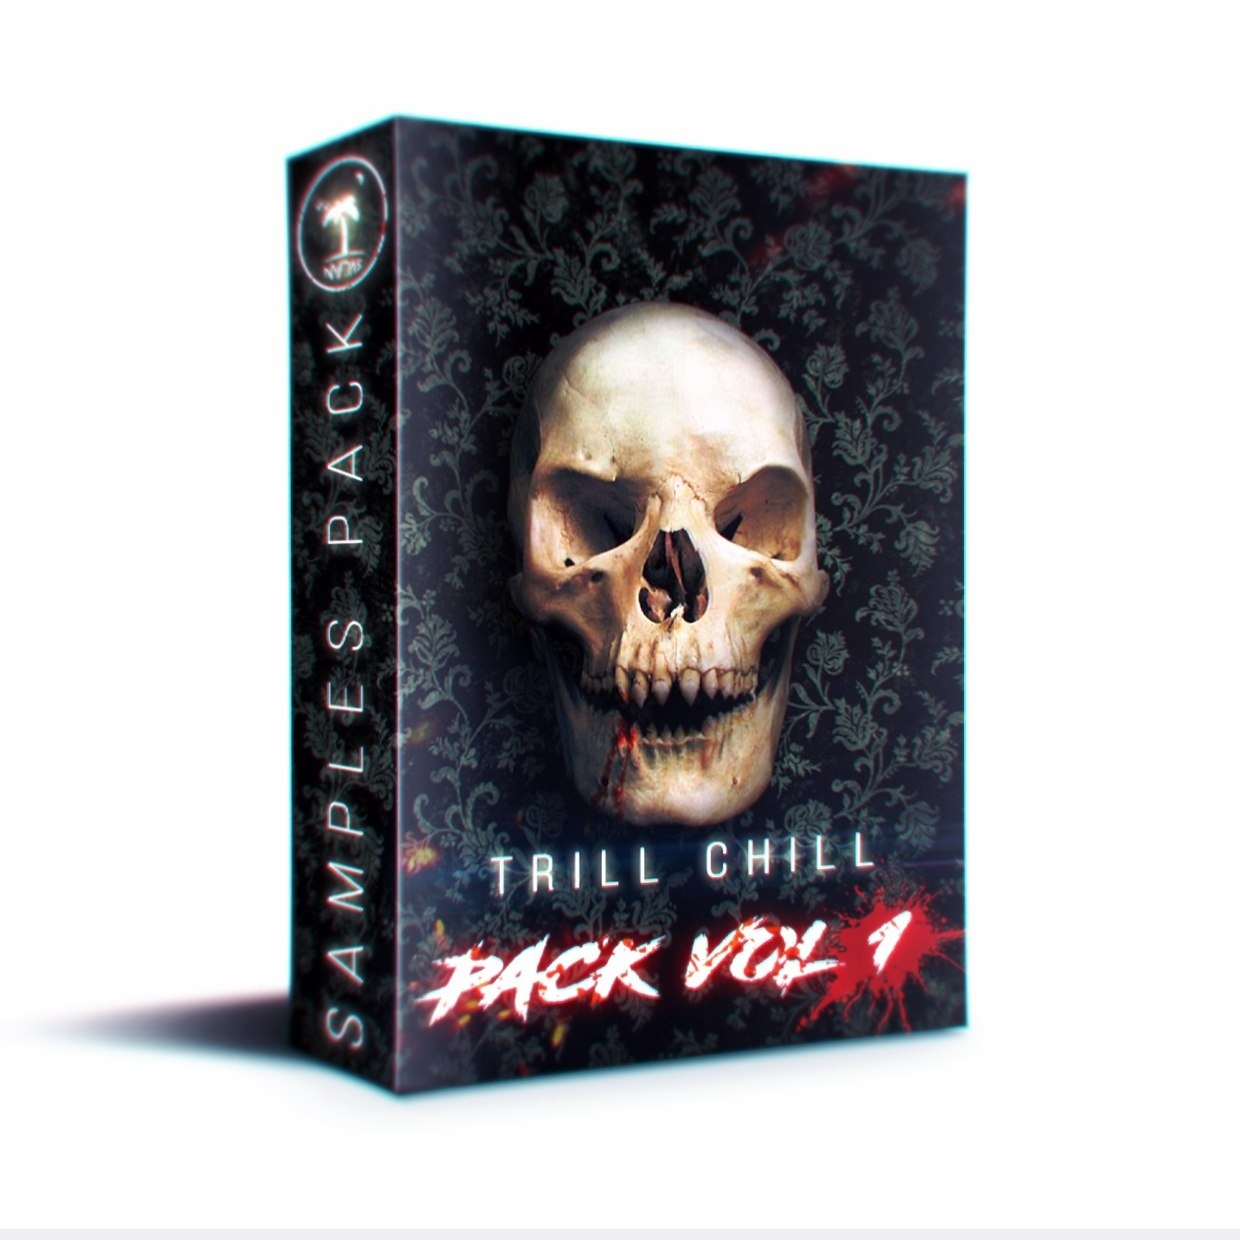 Trill Chill Sample Pack vol. 1